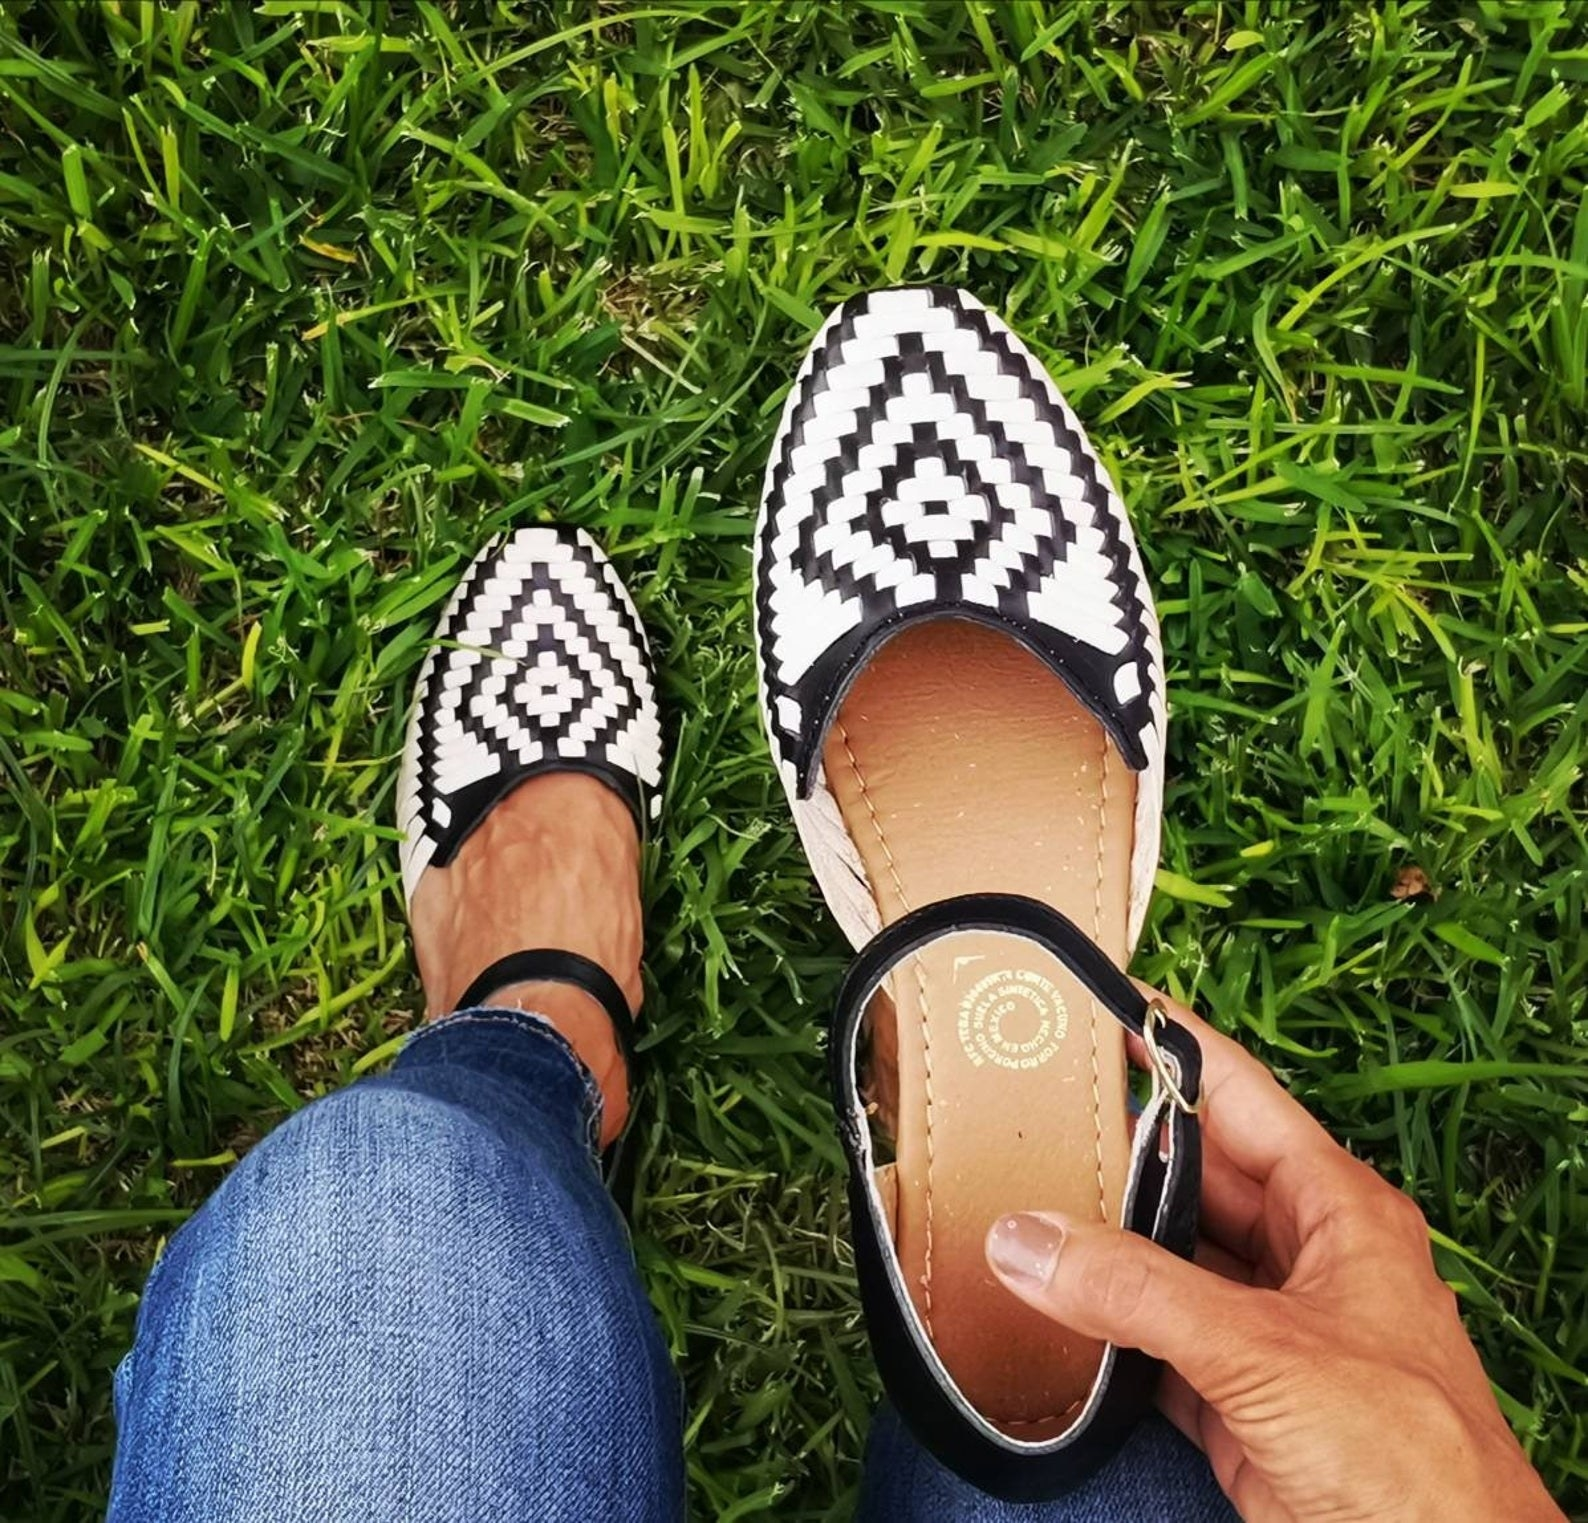 Ankle-strap woven shoes with black and white diamond pattern on the top